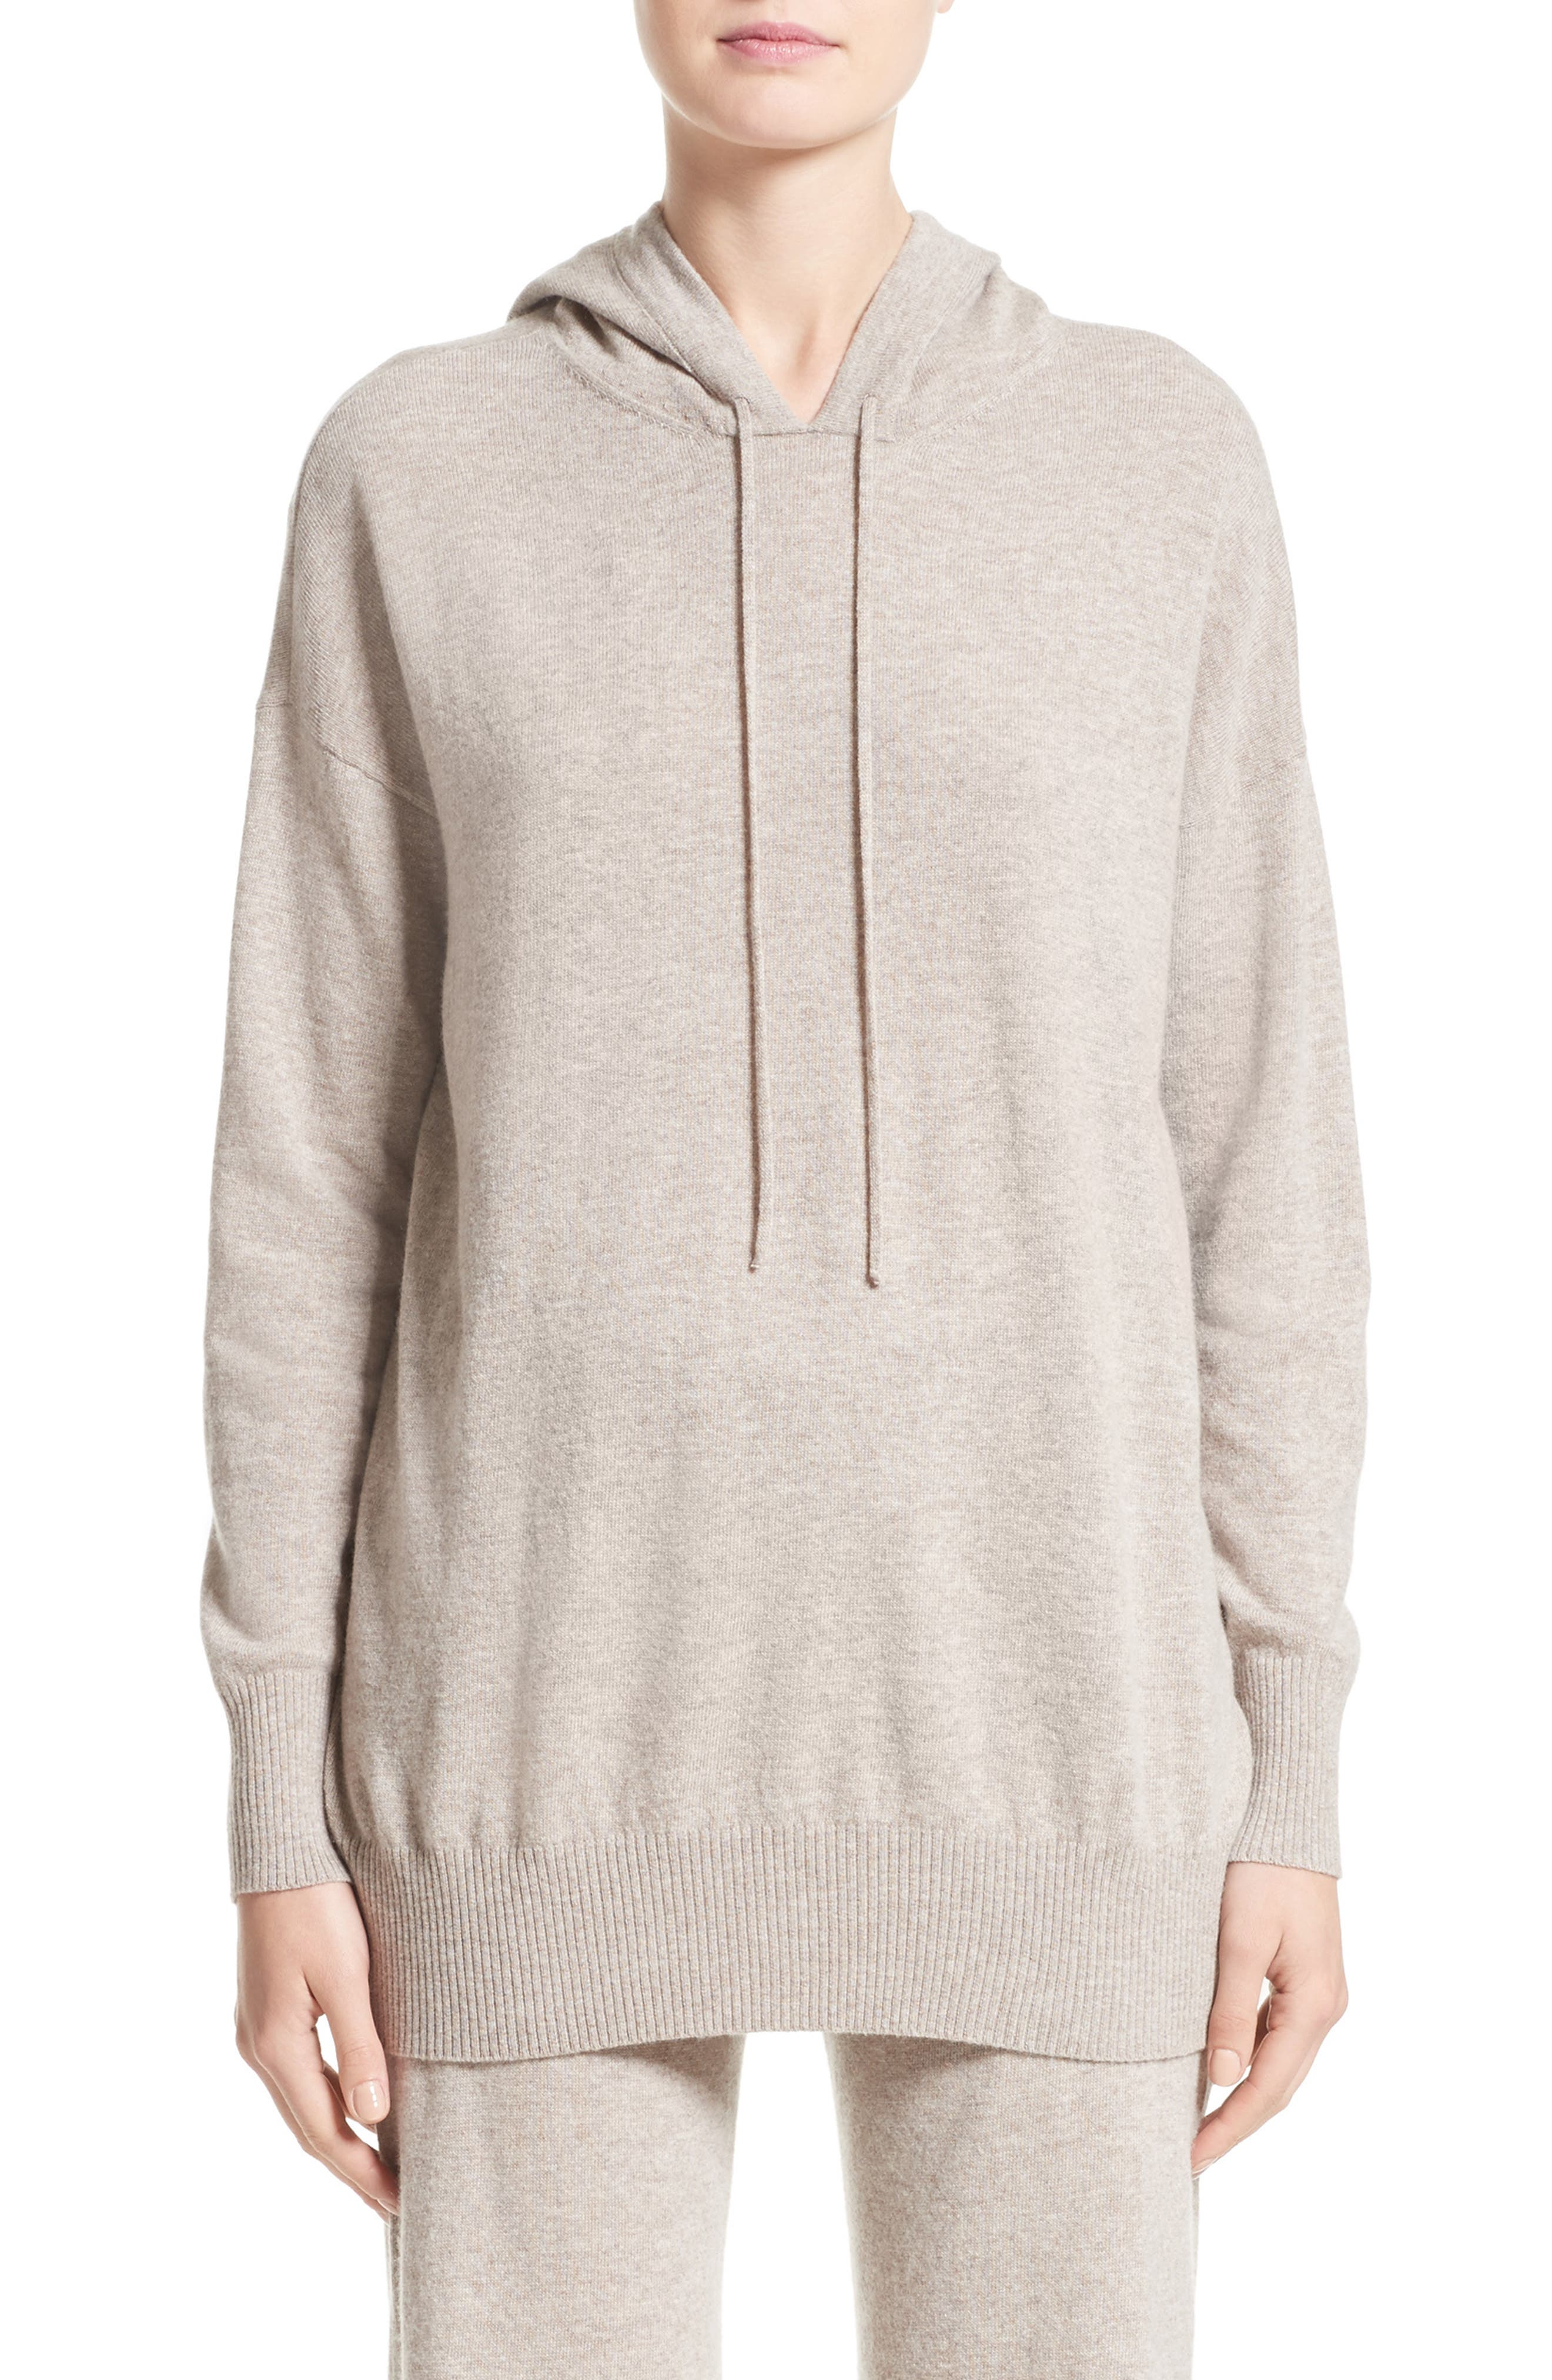 Nitra Wool & Cashmere Hooded Sweater,                             Main thumbnail 1, color,